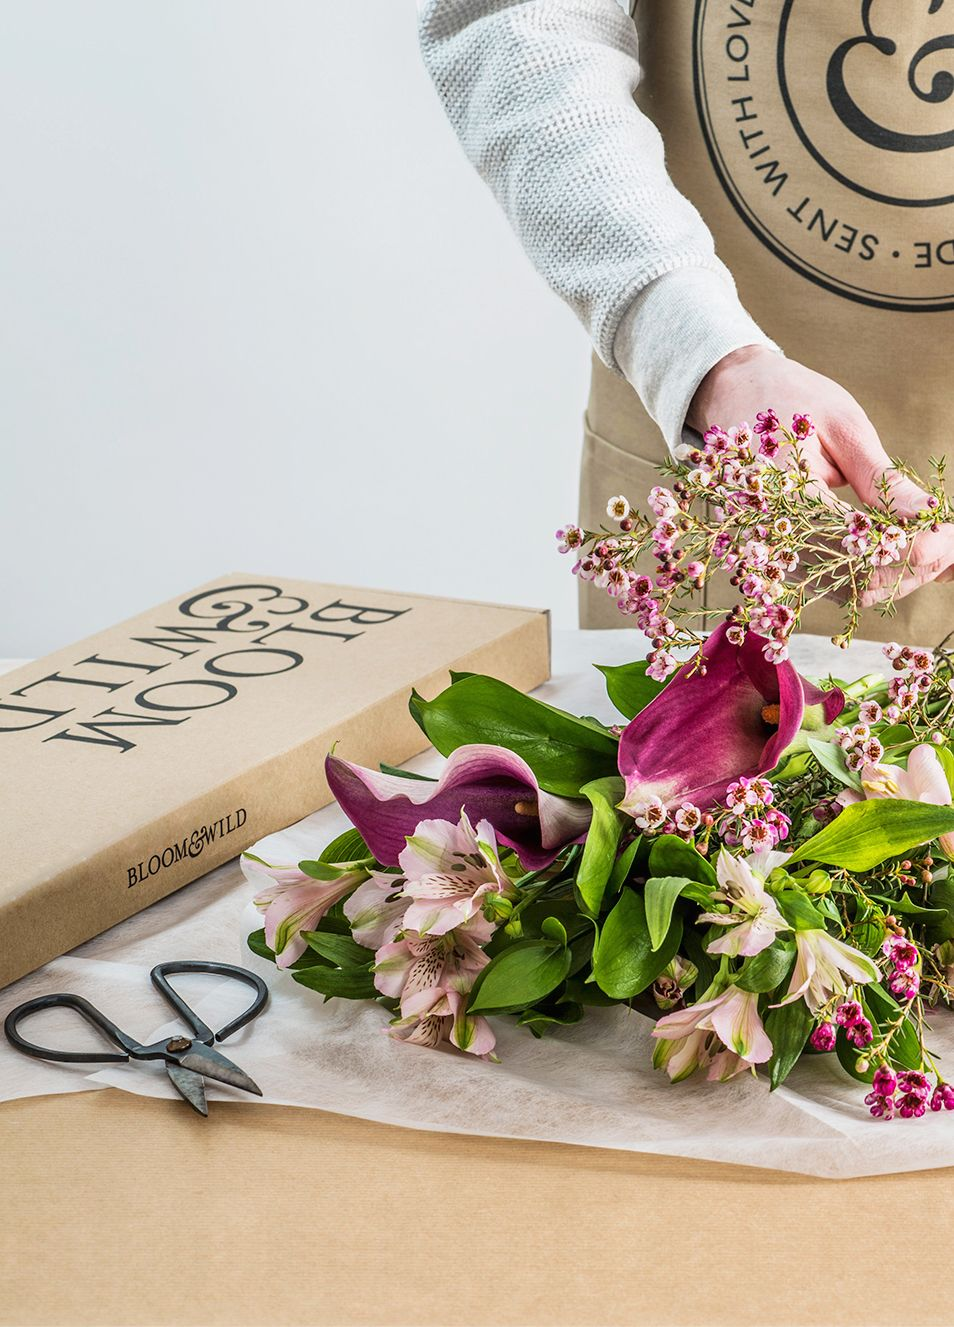 This Spring We Re Inspired By Classic Yet Wild English Gardens Filled With Stocks Lilies Wax Flowe Bloom And Wild Spring Flower Arrangements Flower Delivery